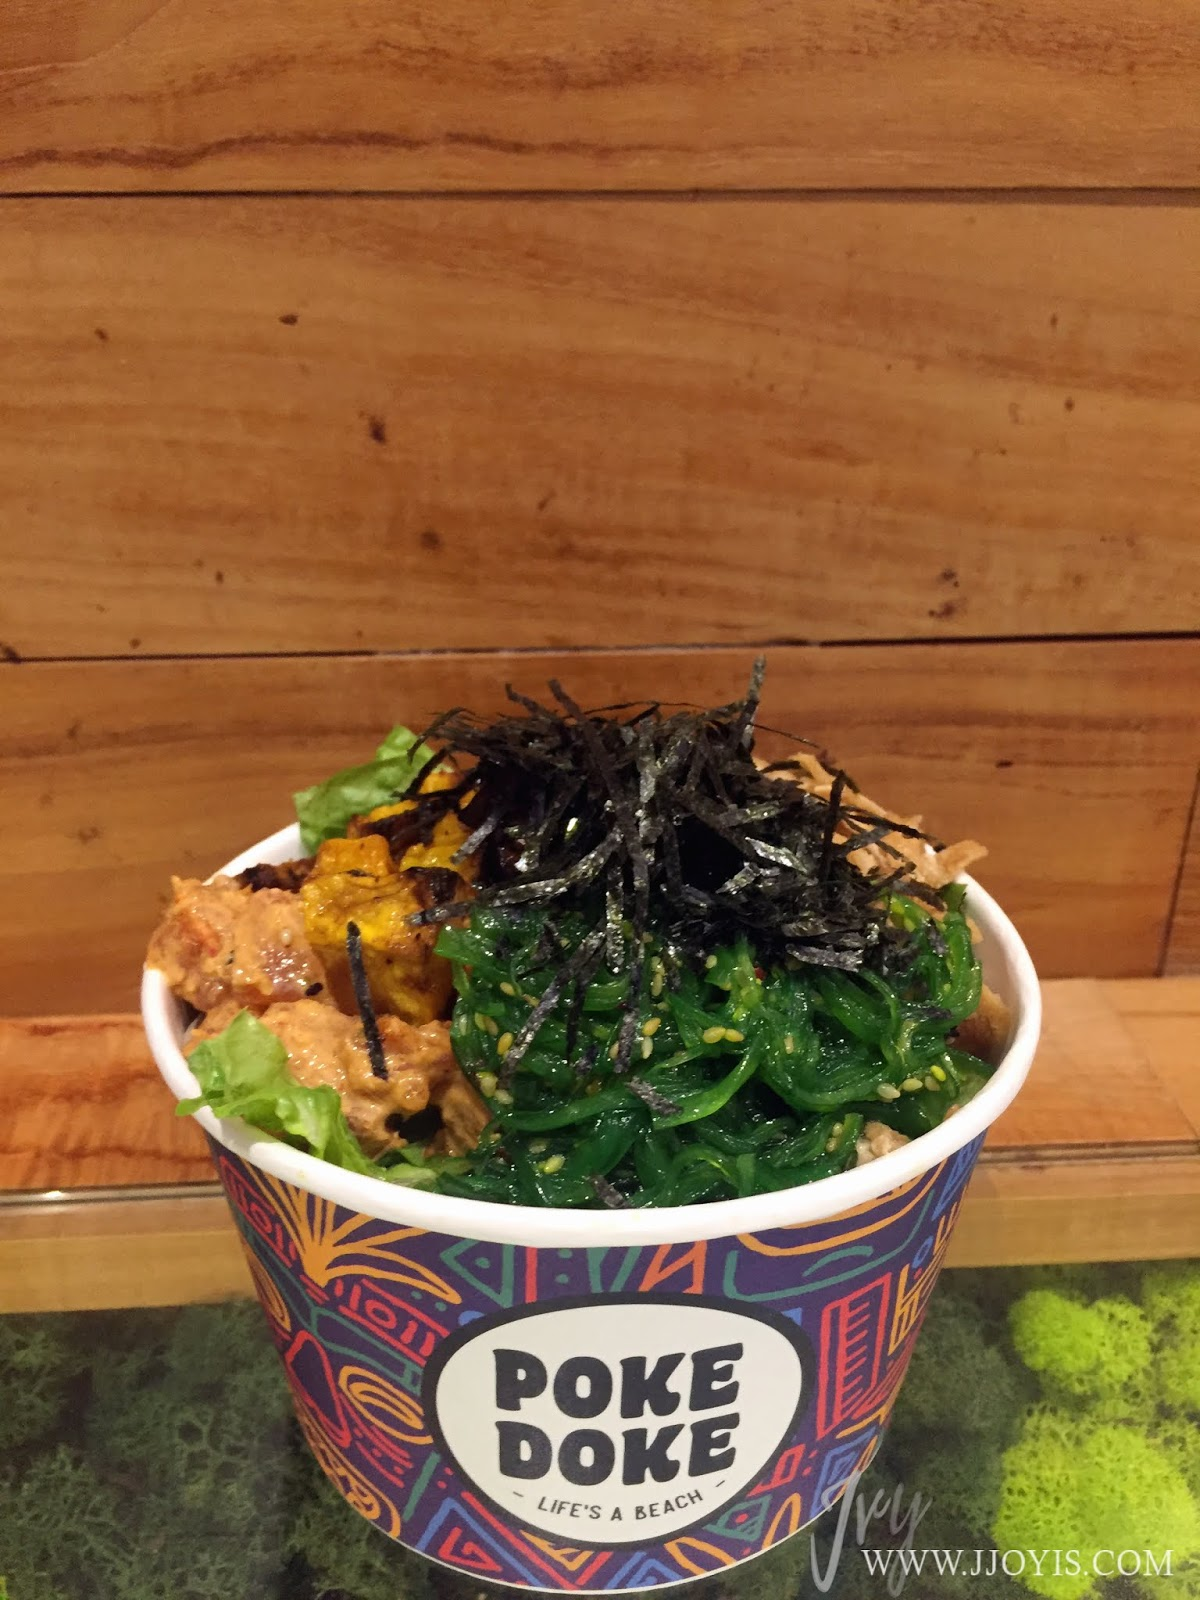 poke doke poke bowl medium millenia walk